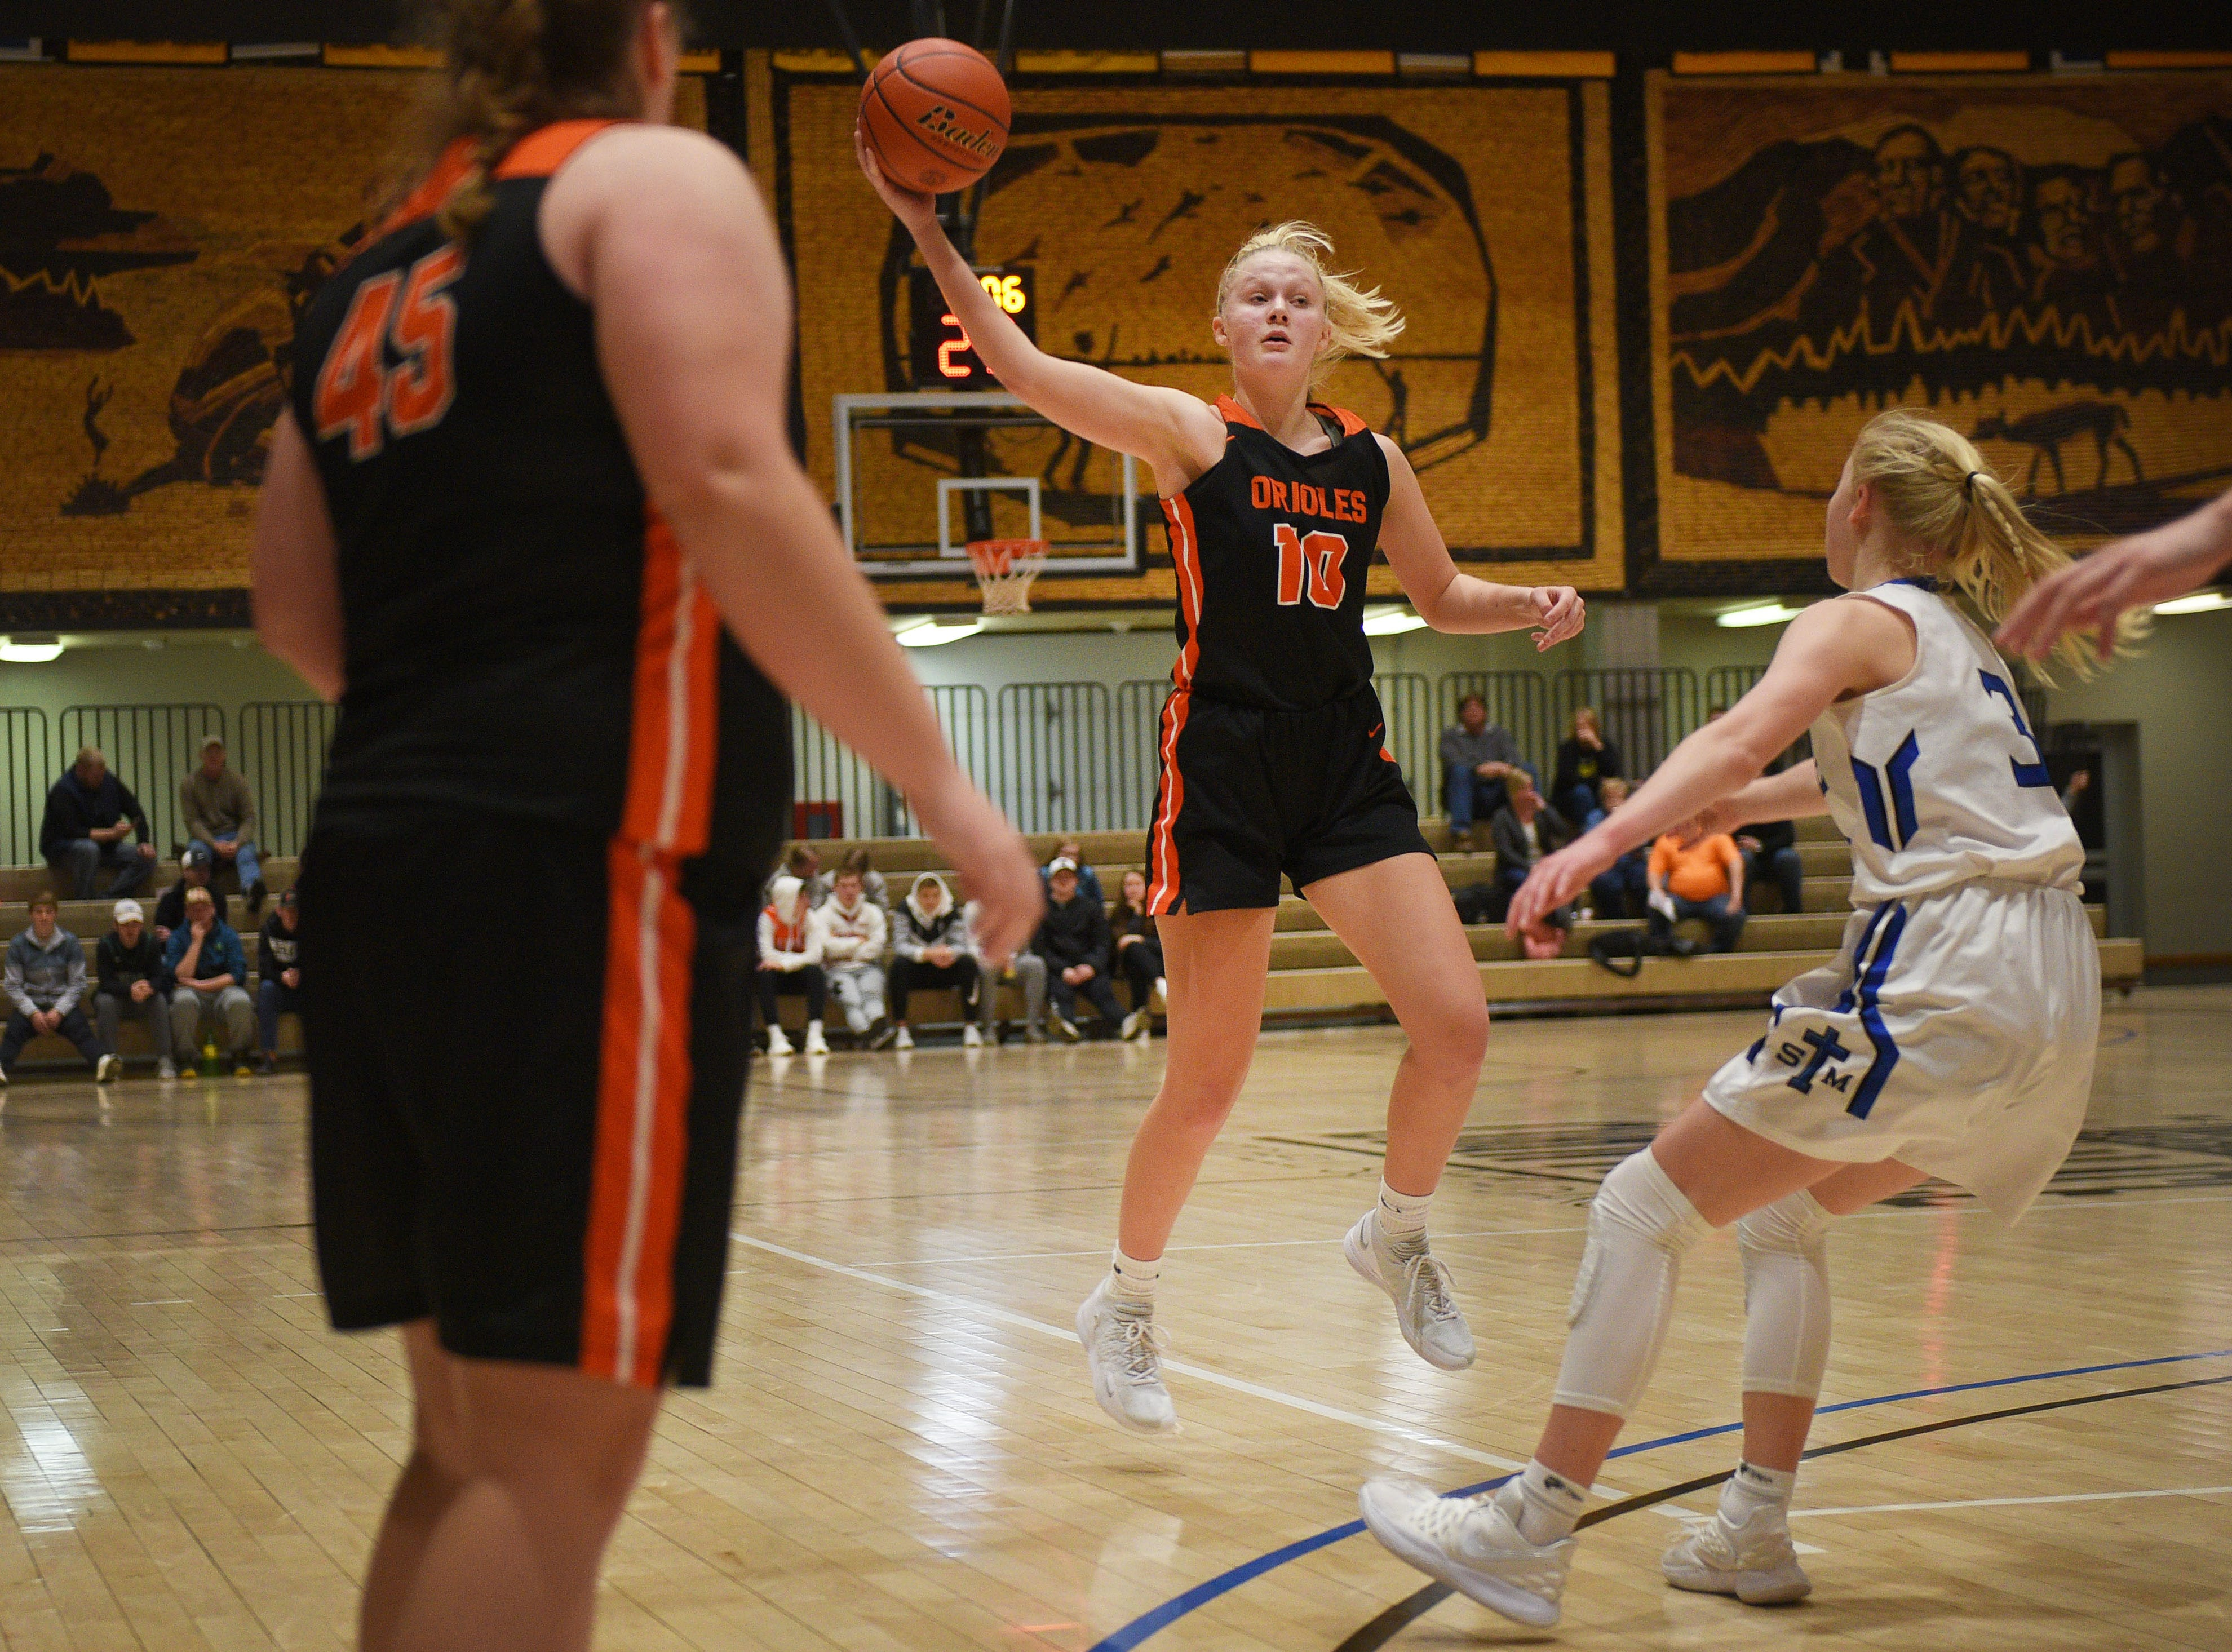 Lennox's Madysen Vlastuin during the game against St. Thomas More in the Hanson Girls Classic Saturday,  Jan. 12, in Mitchell.